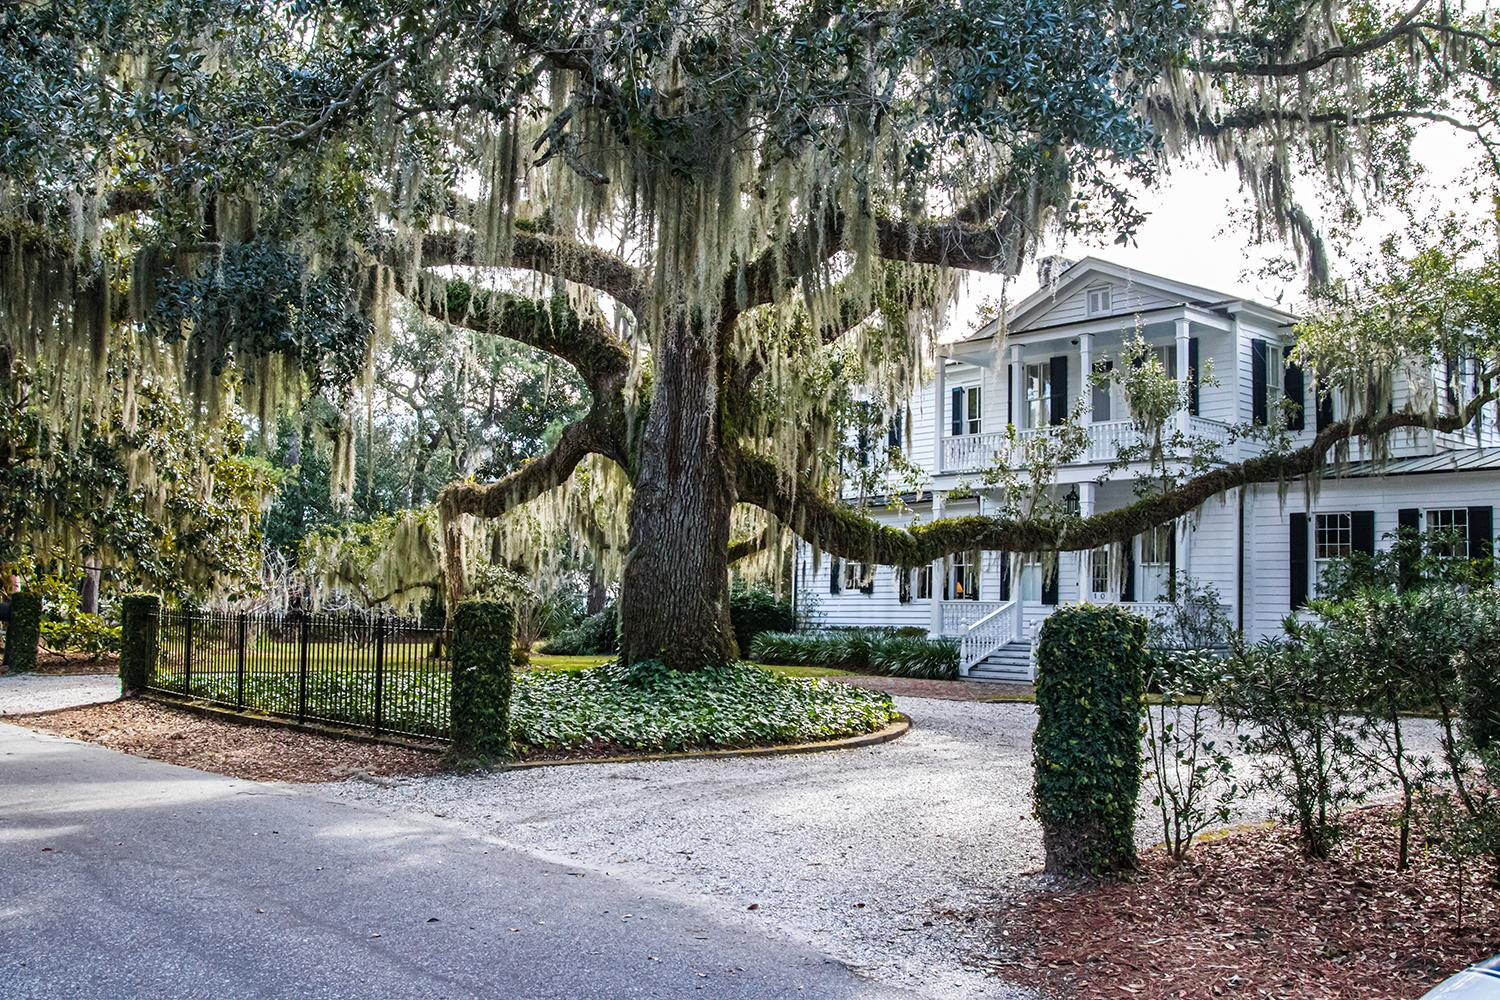 Beaufort City Walking Tour